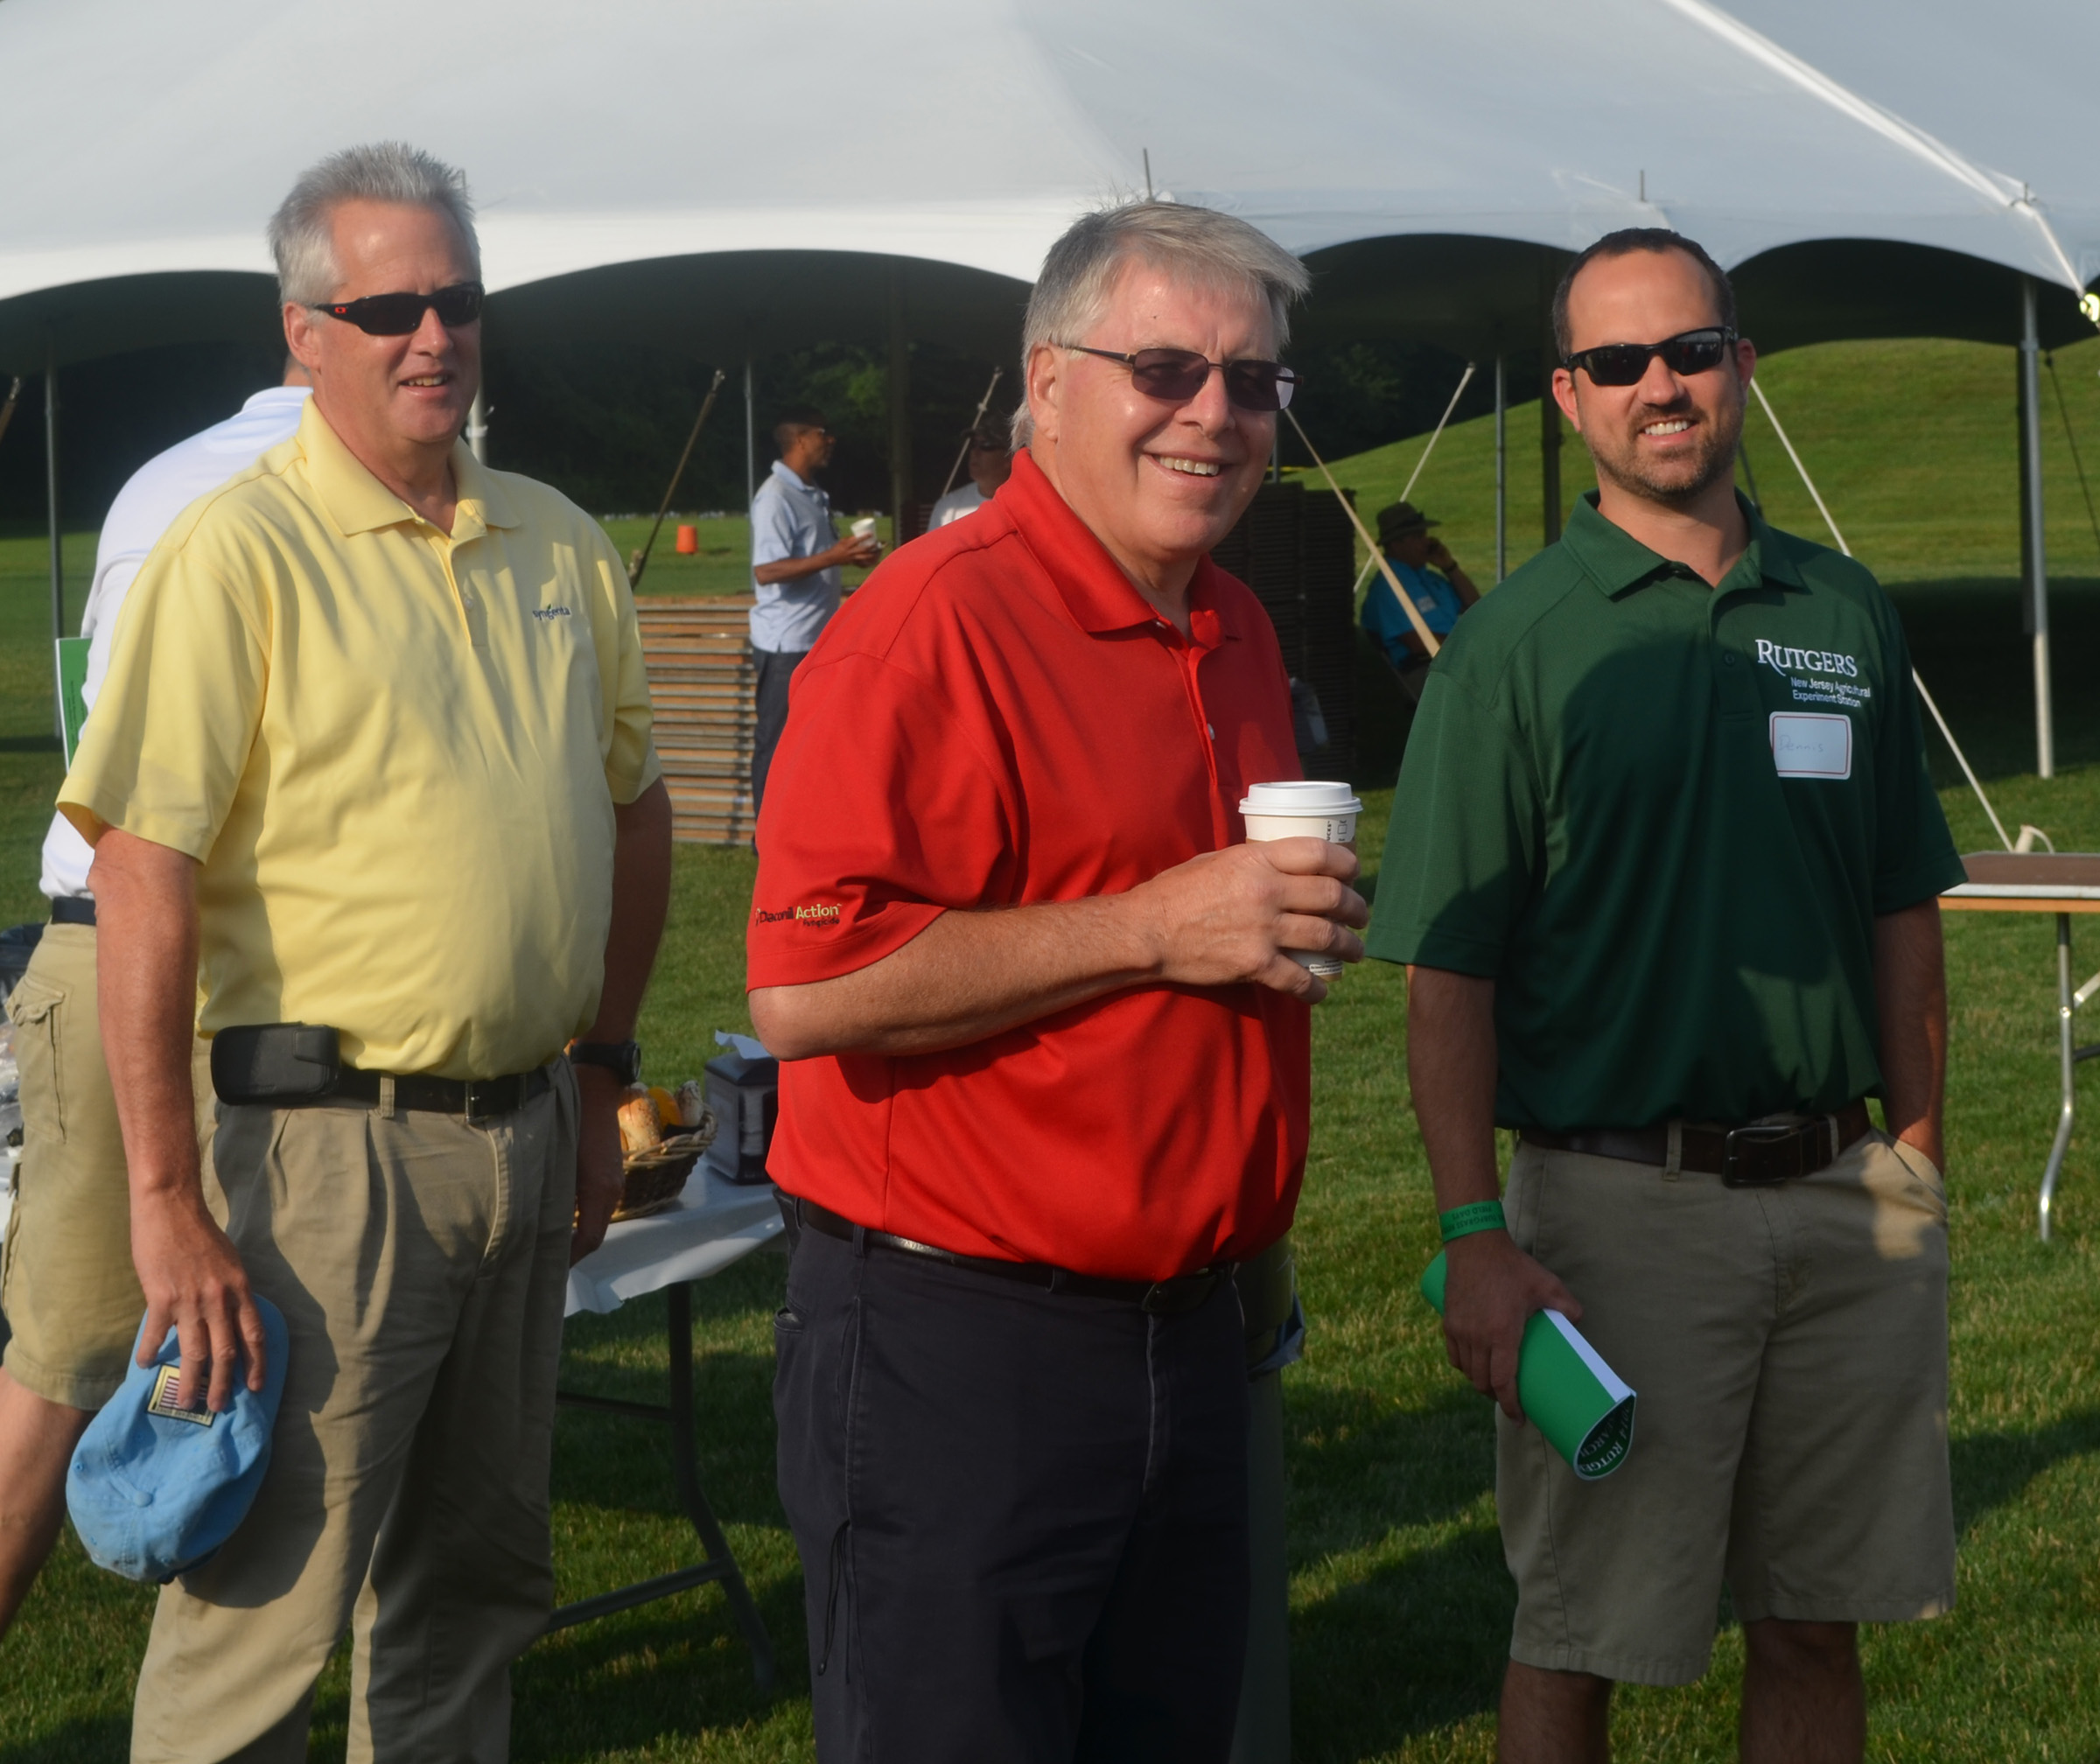 2014 Rutgers Turfgrass Research Field Days